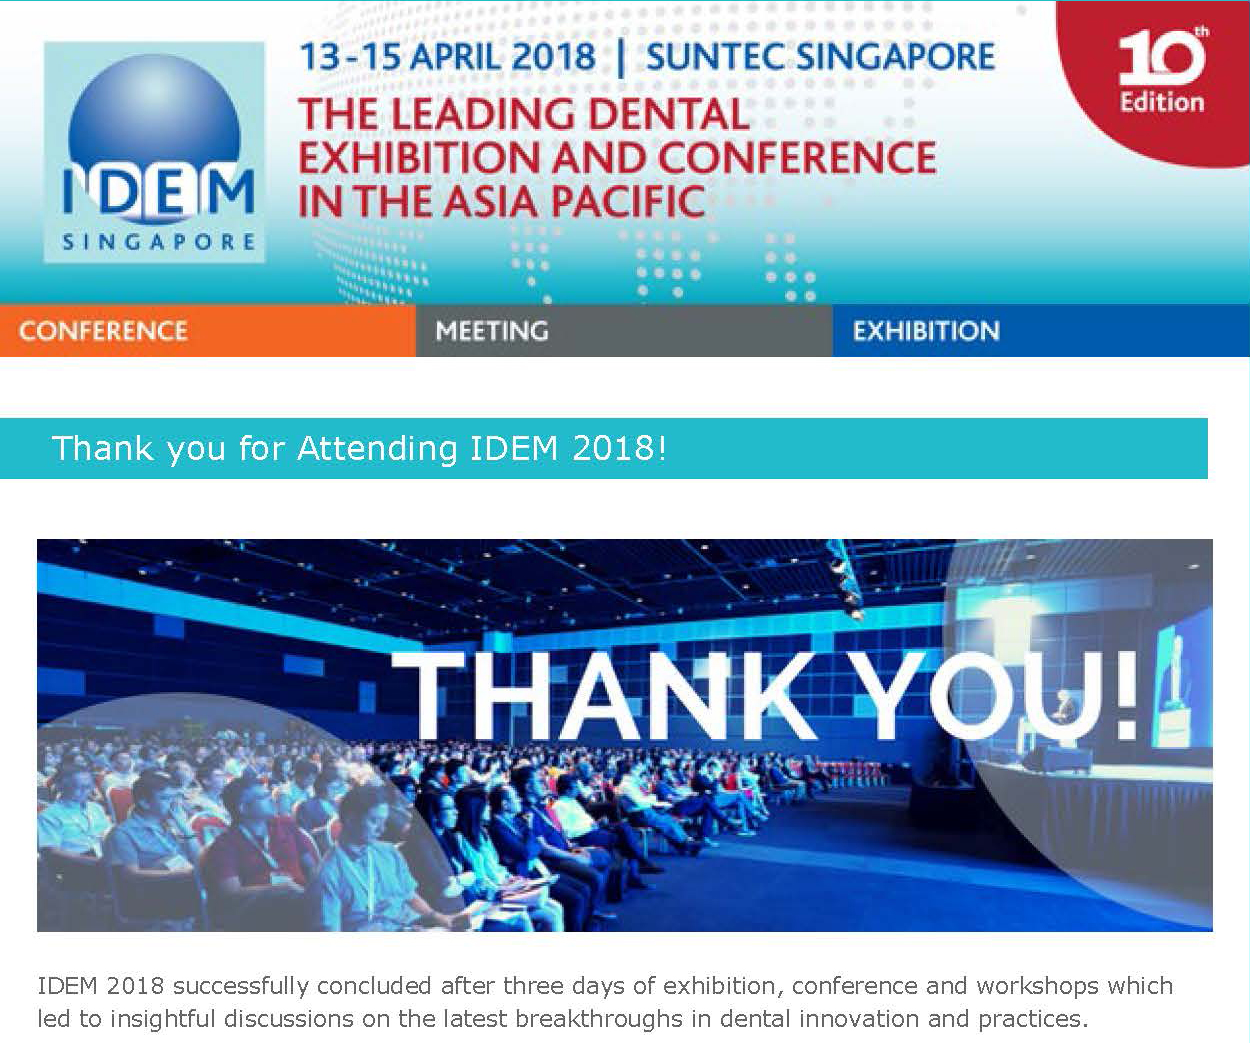 Thank you for attending IDEM 2018 - News